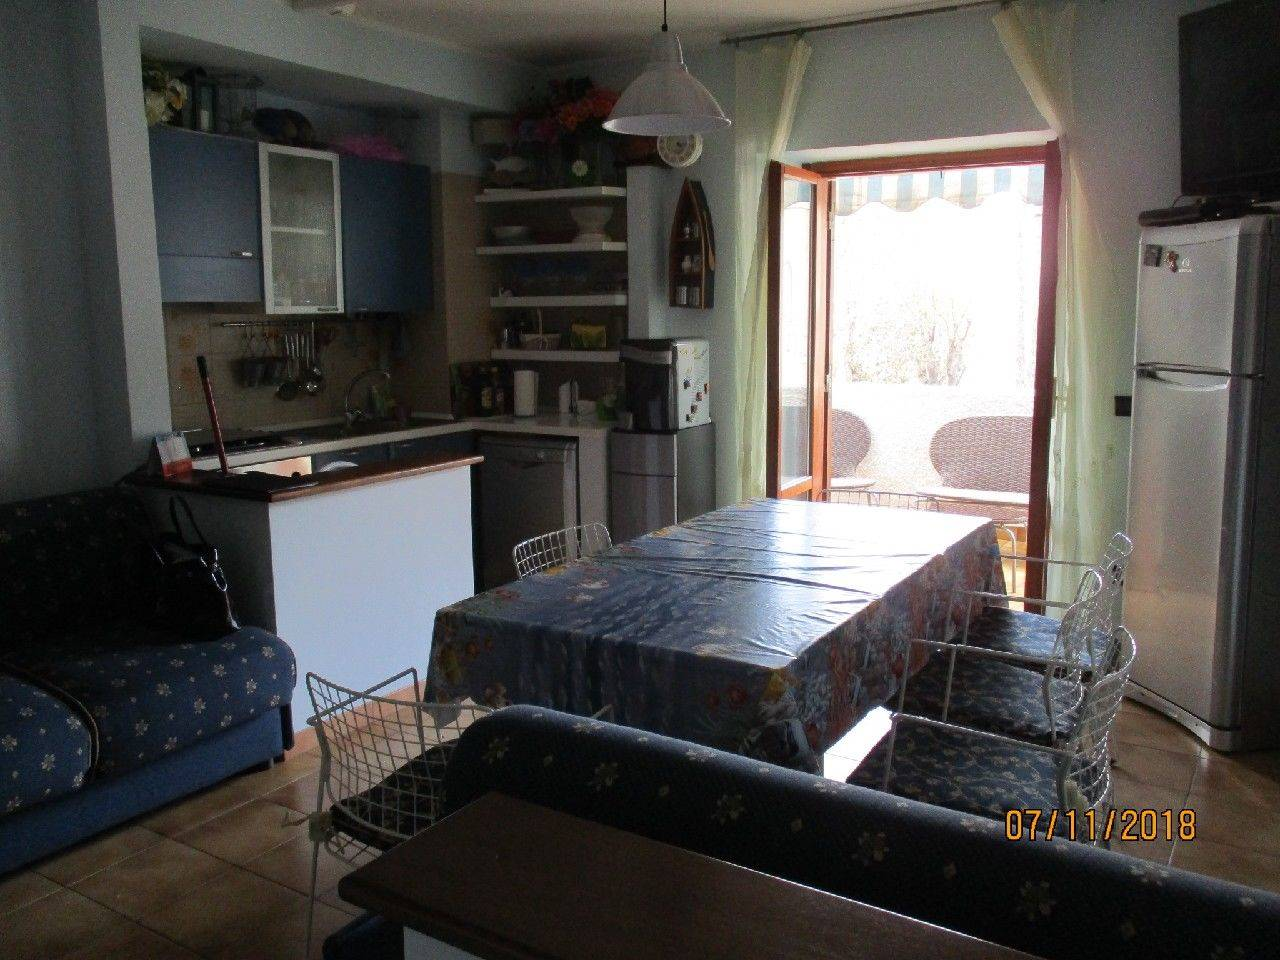 SANTA MARINELLA, Apartment for the vacation for rent of 75 Sq. mt., Good condition, Energetic class: G, Epi: 175 kwh/m2 year, placed at 1° on 2,